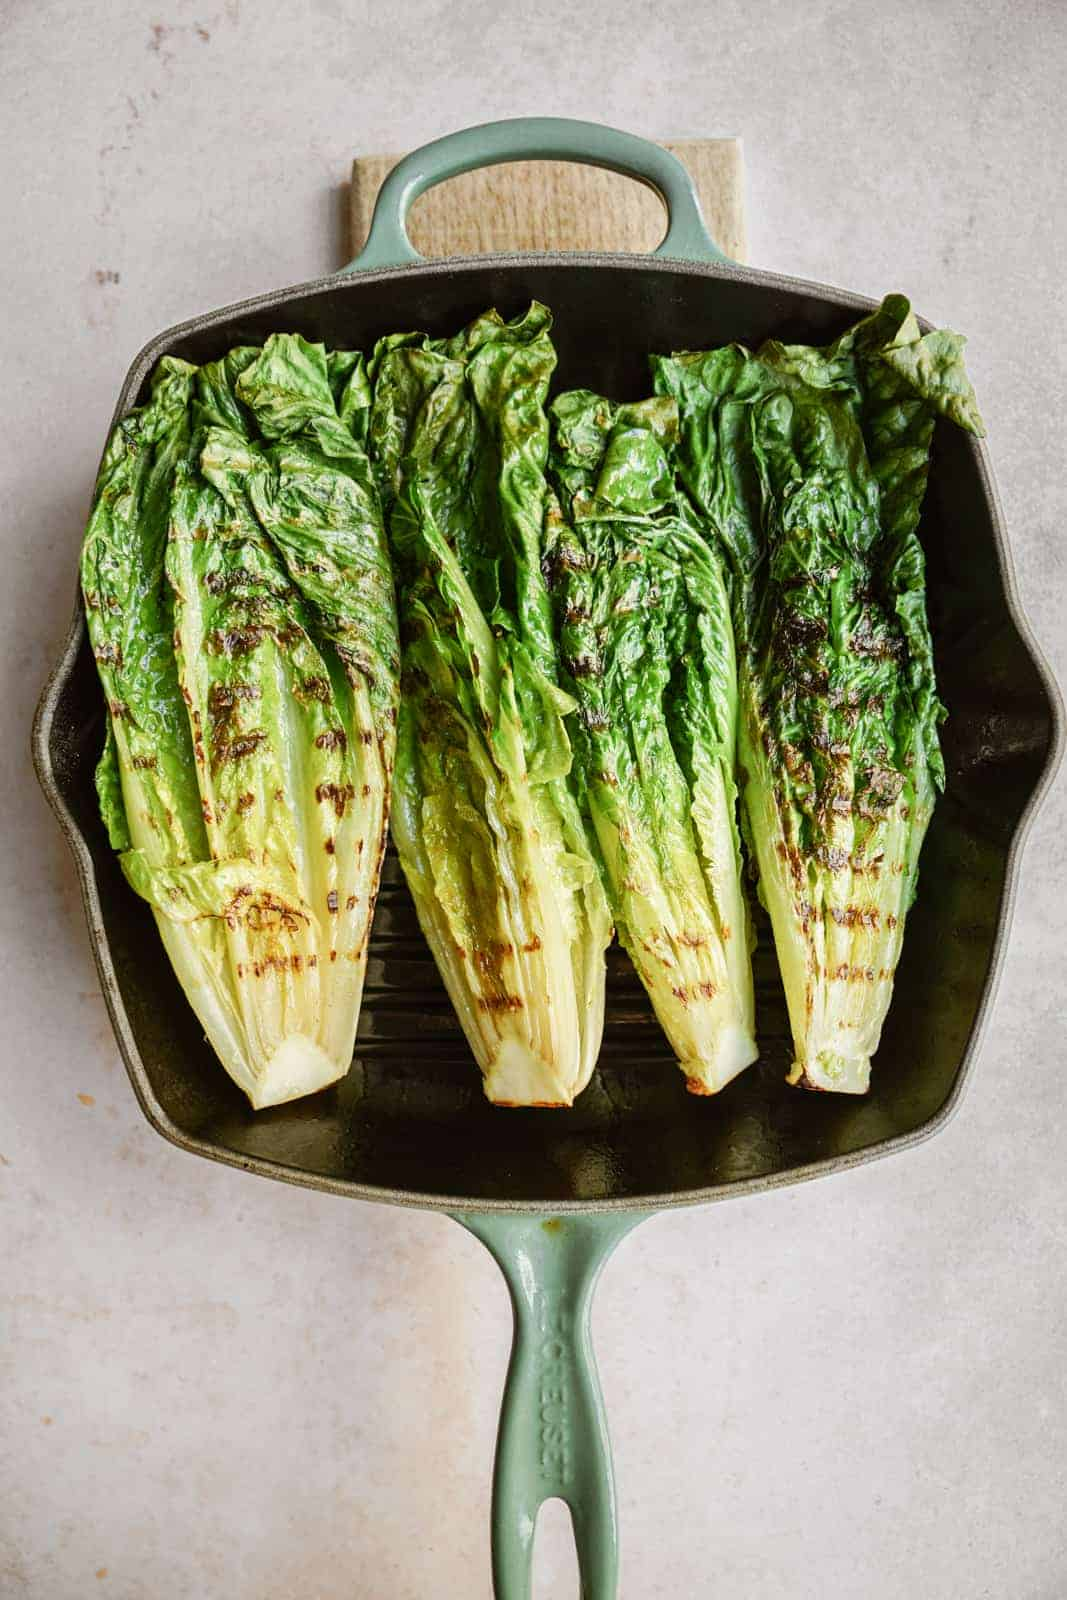 grilled romaine lettuce heads